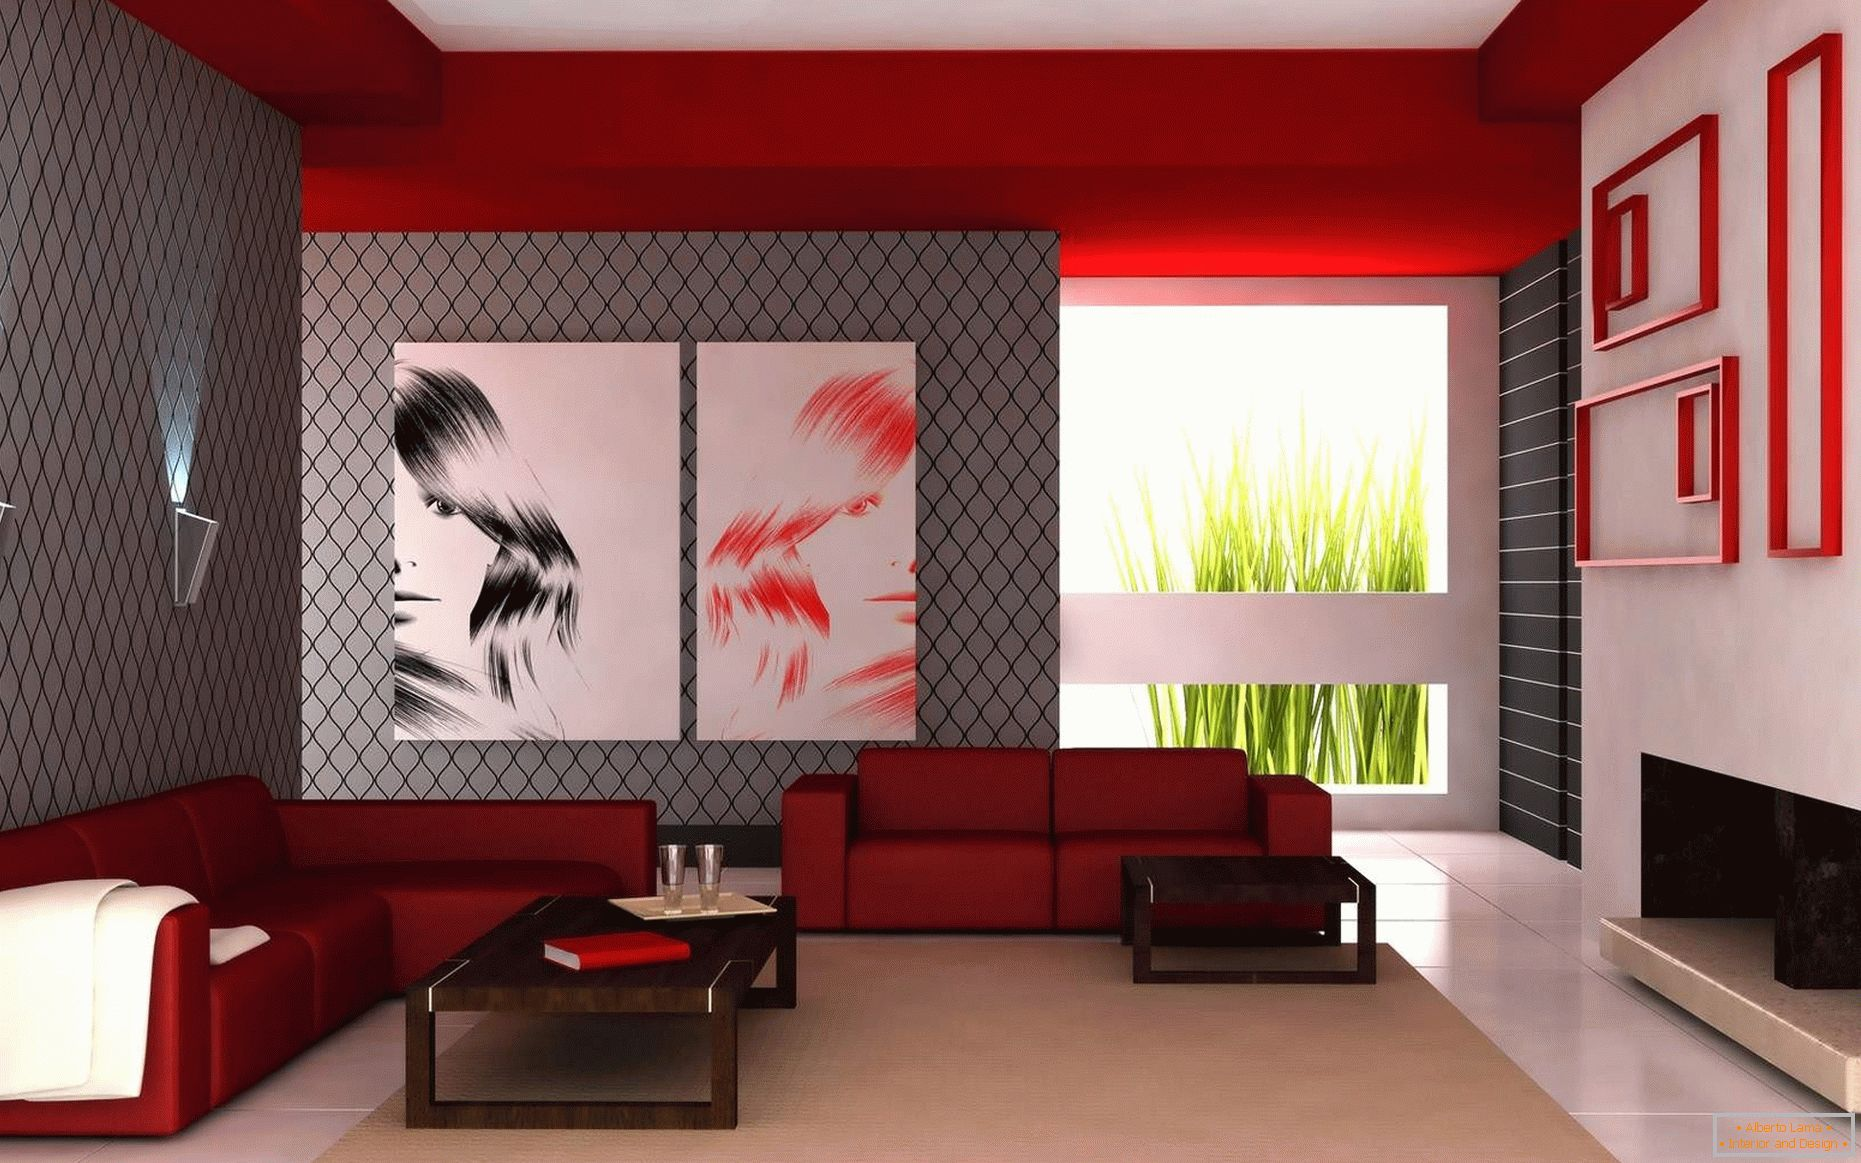 The combination of white, red and gray colors in the living room